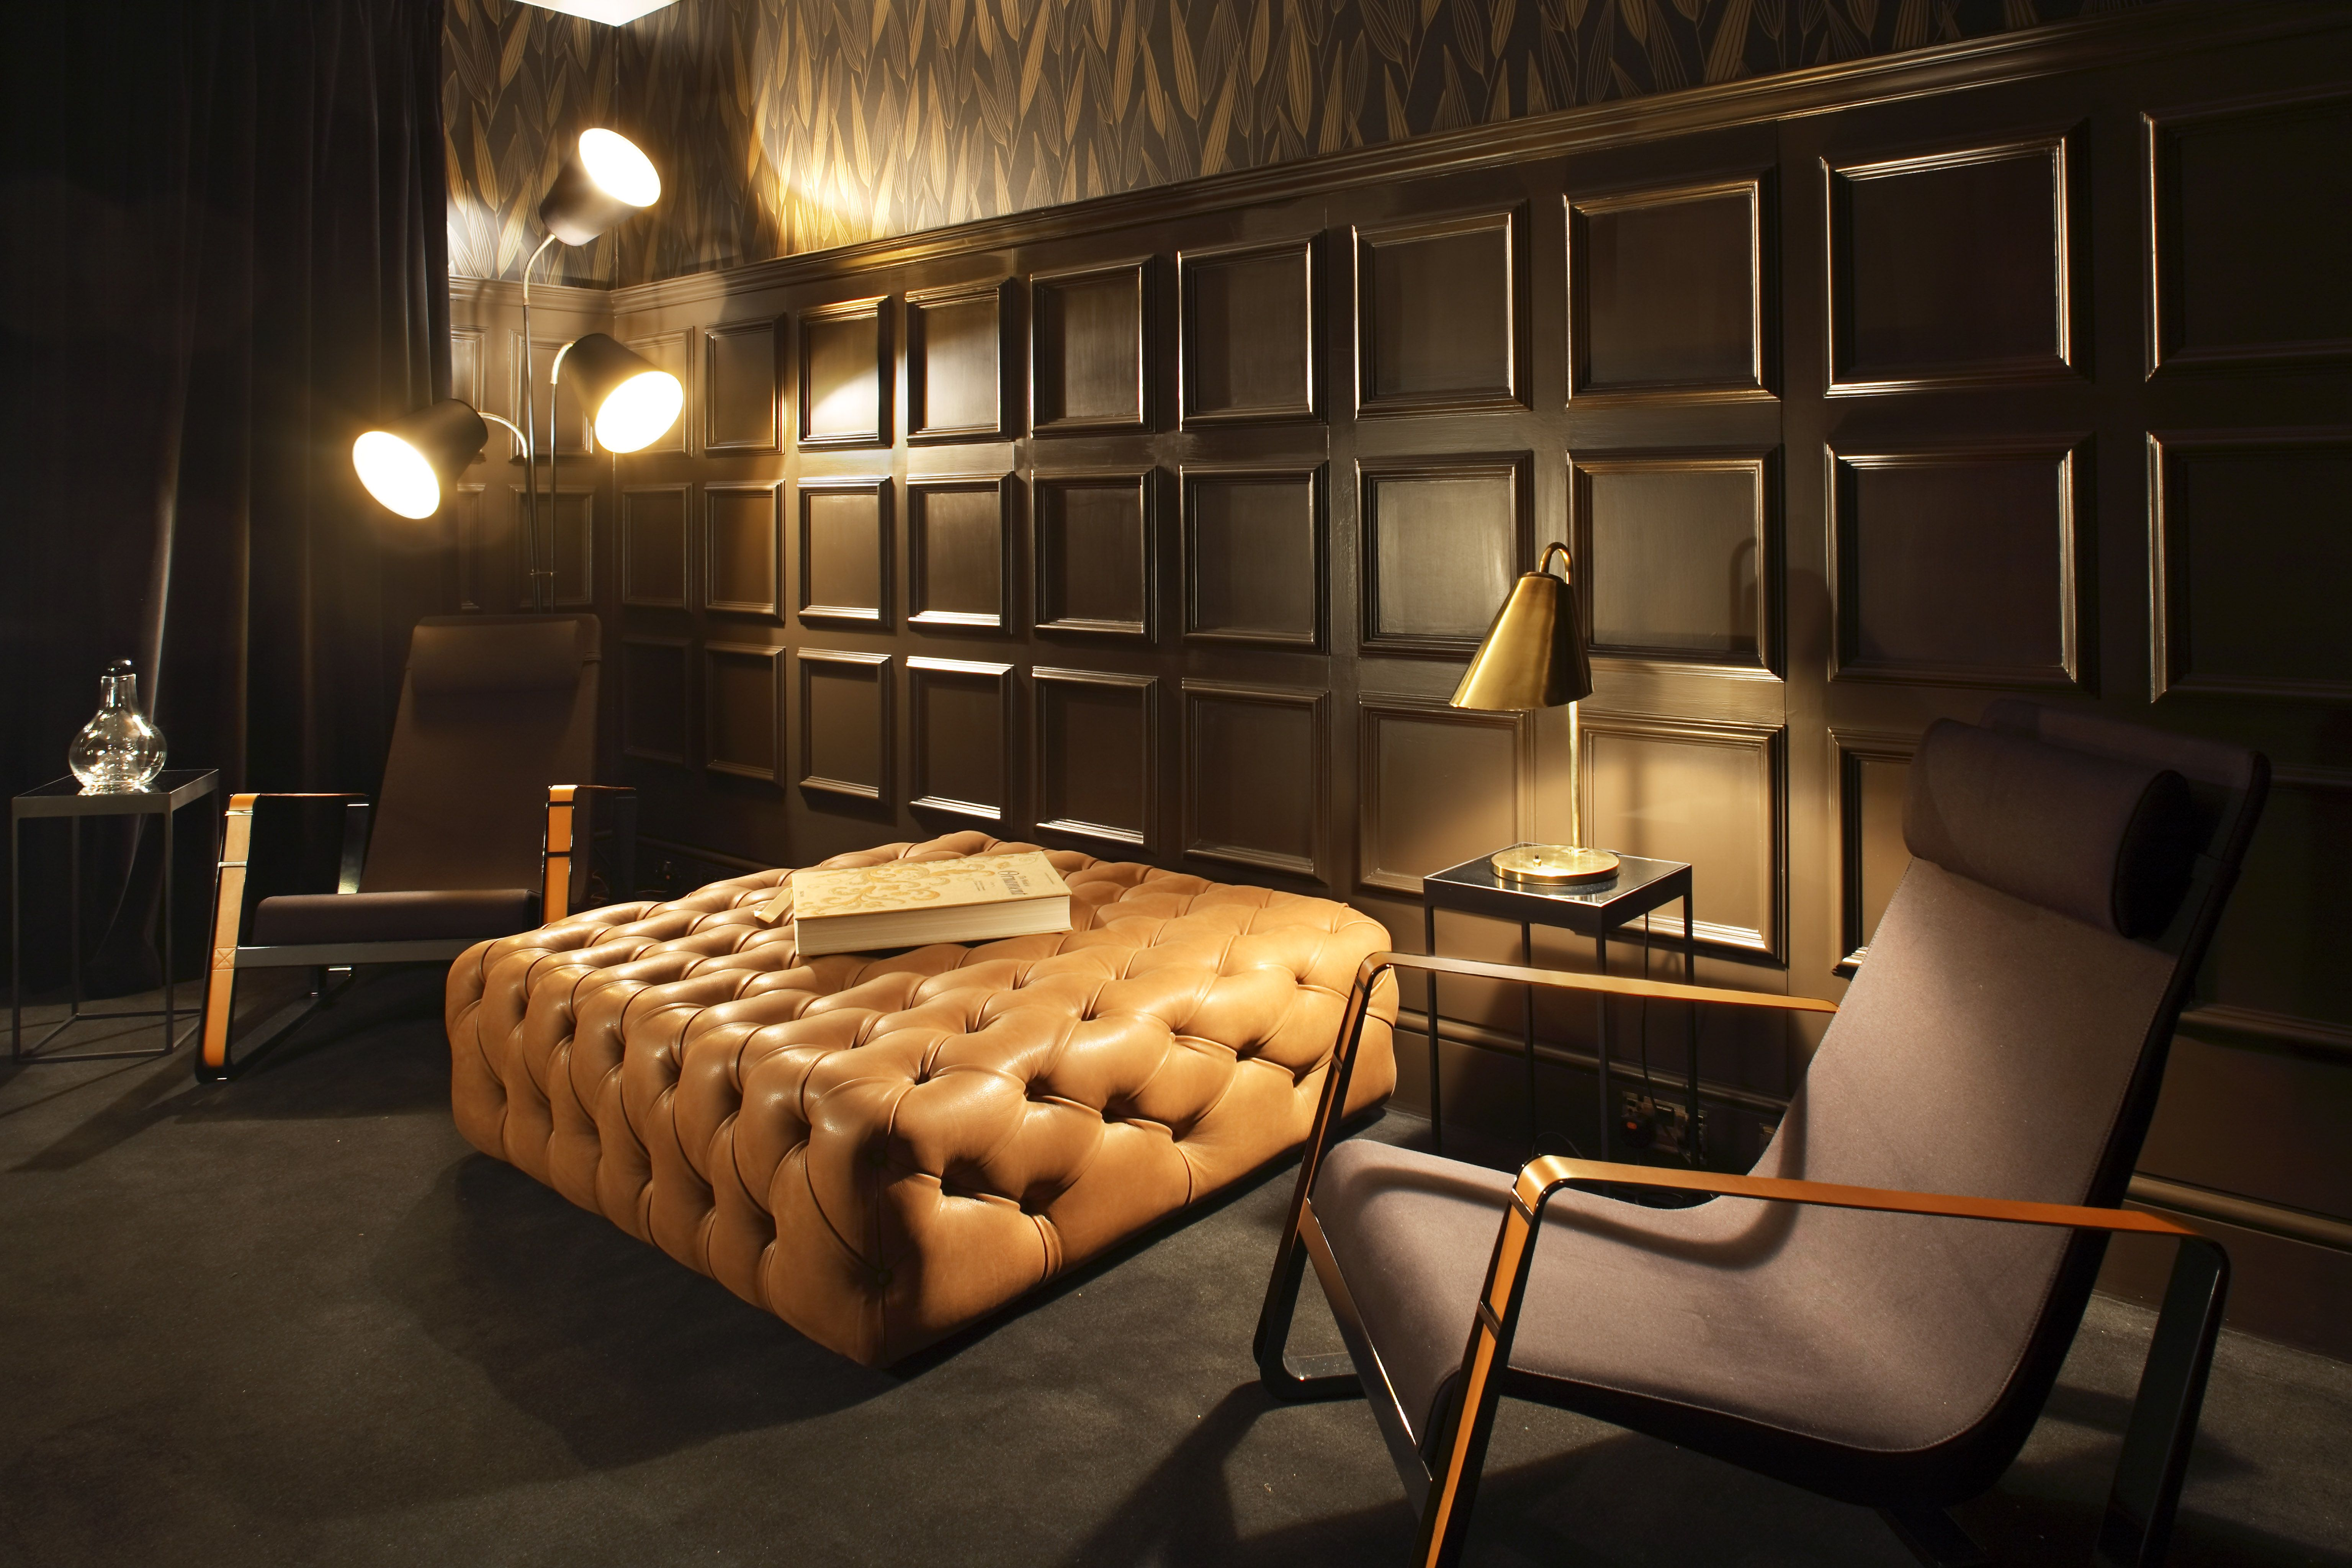 Breakout room rich moulding nod to traditional english design